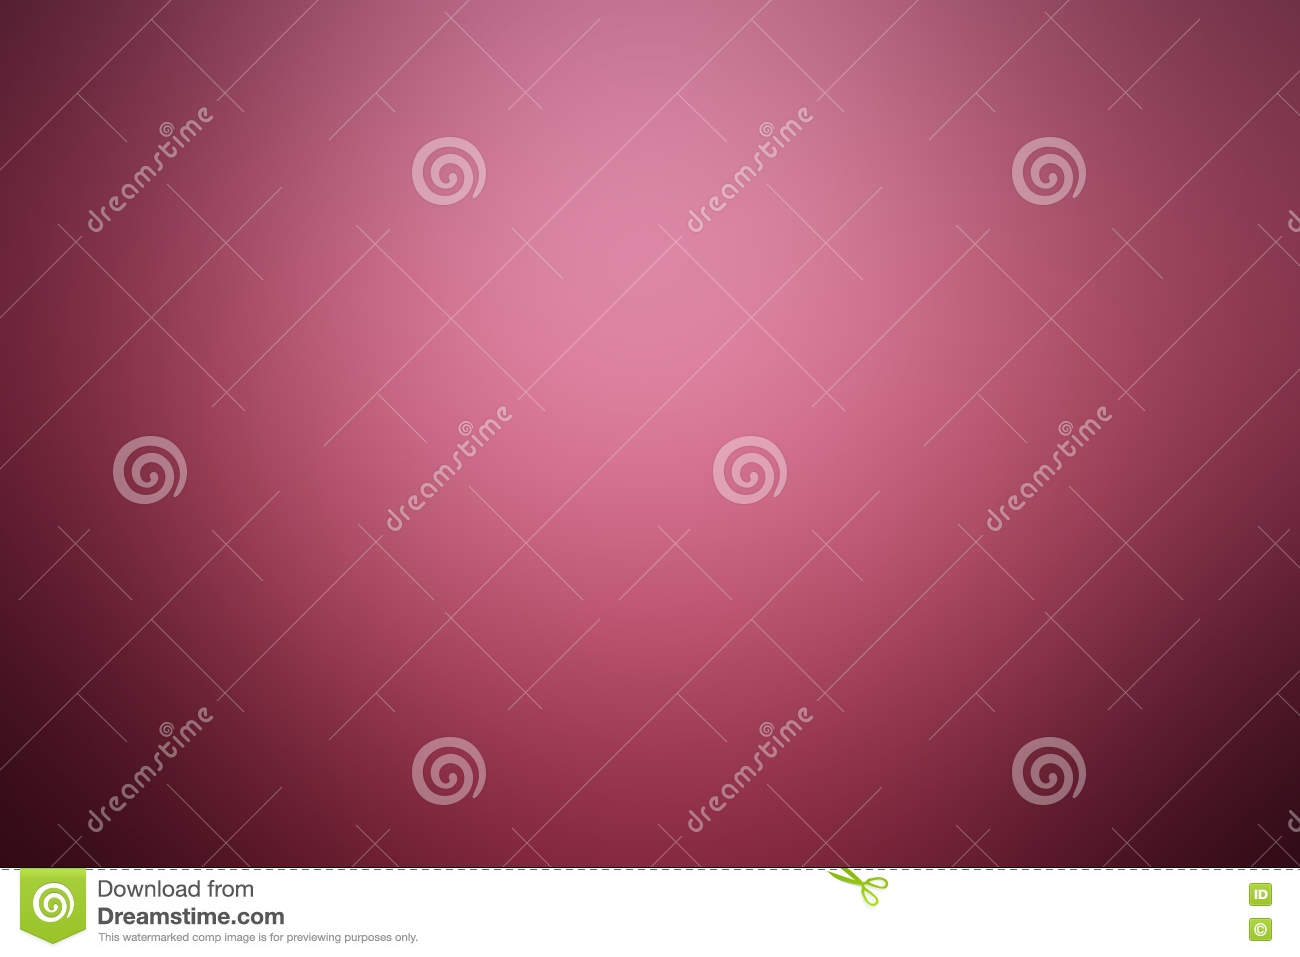 Abstract dark pink blurry background - Gradient soft blur wallpaper for your design.